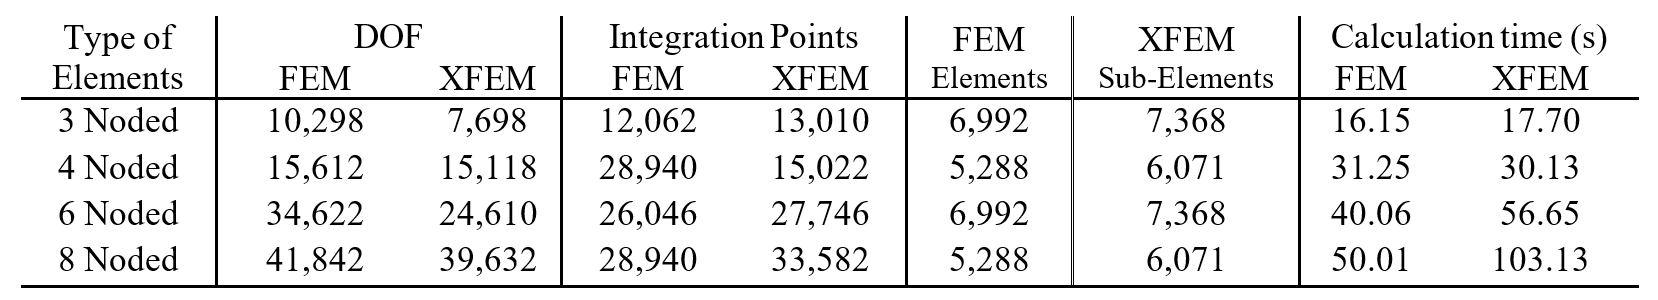 Table 4. Calculation details for both numerical schemes for different types of elements.